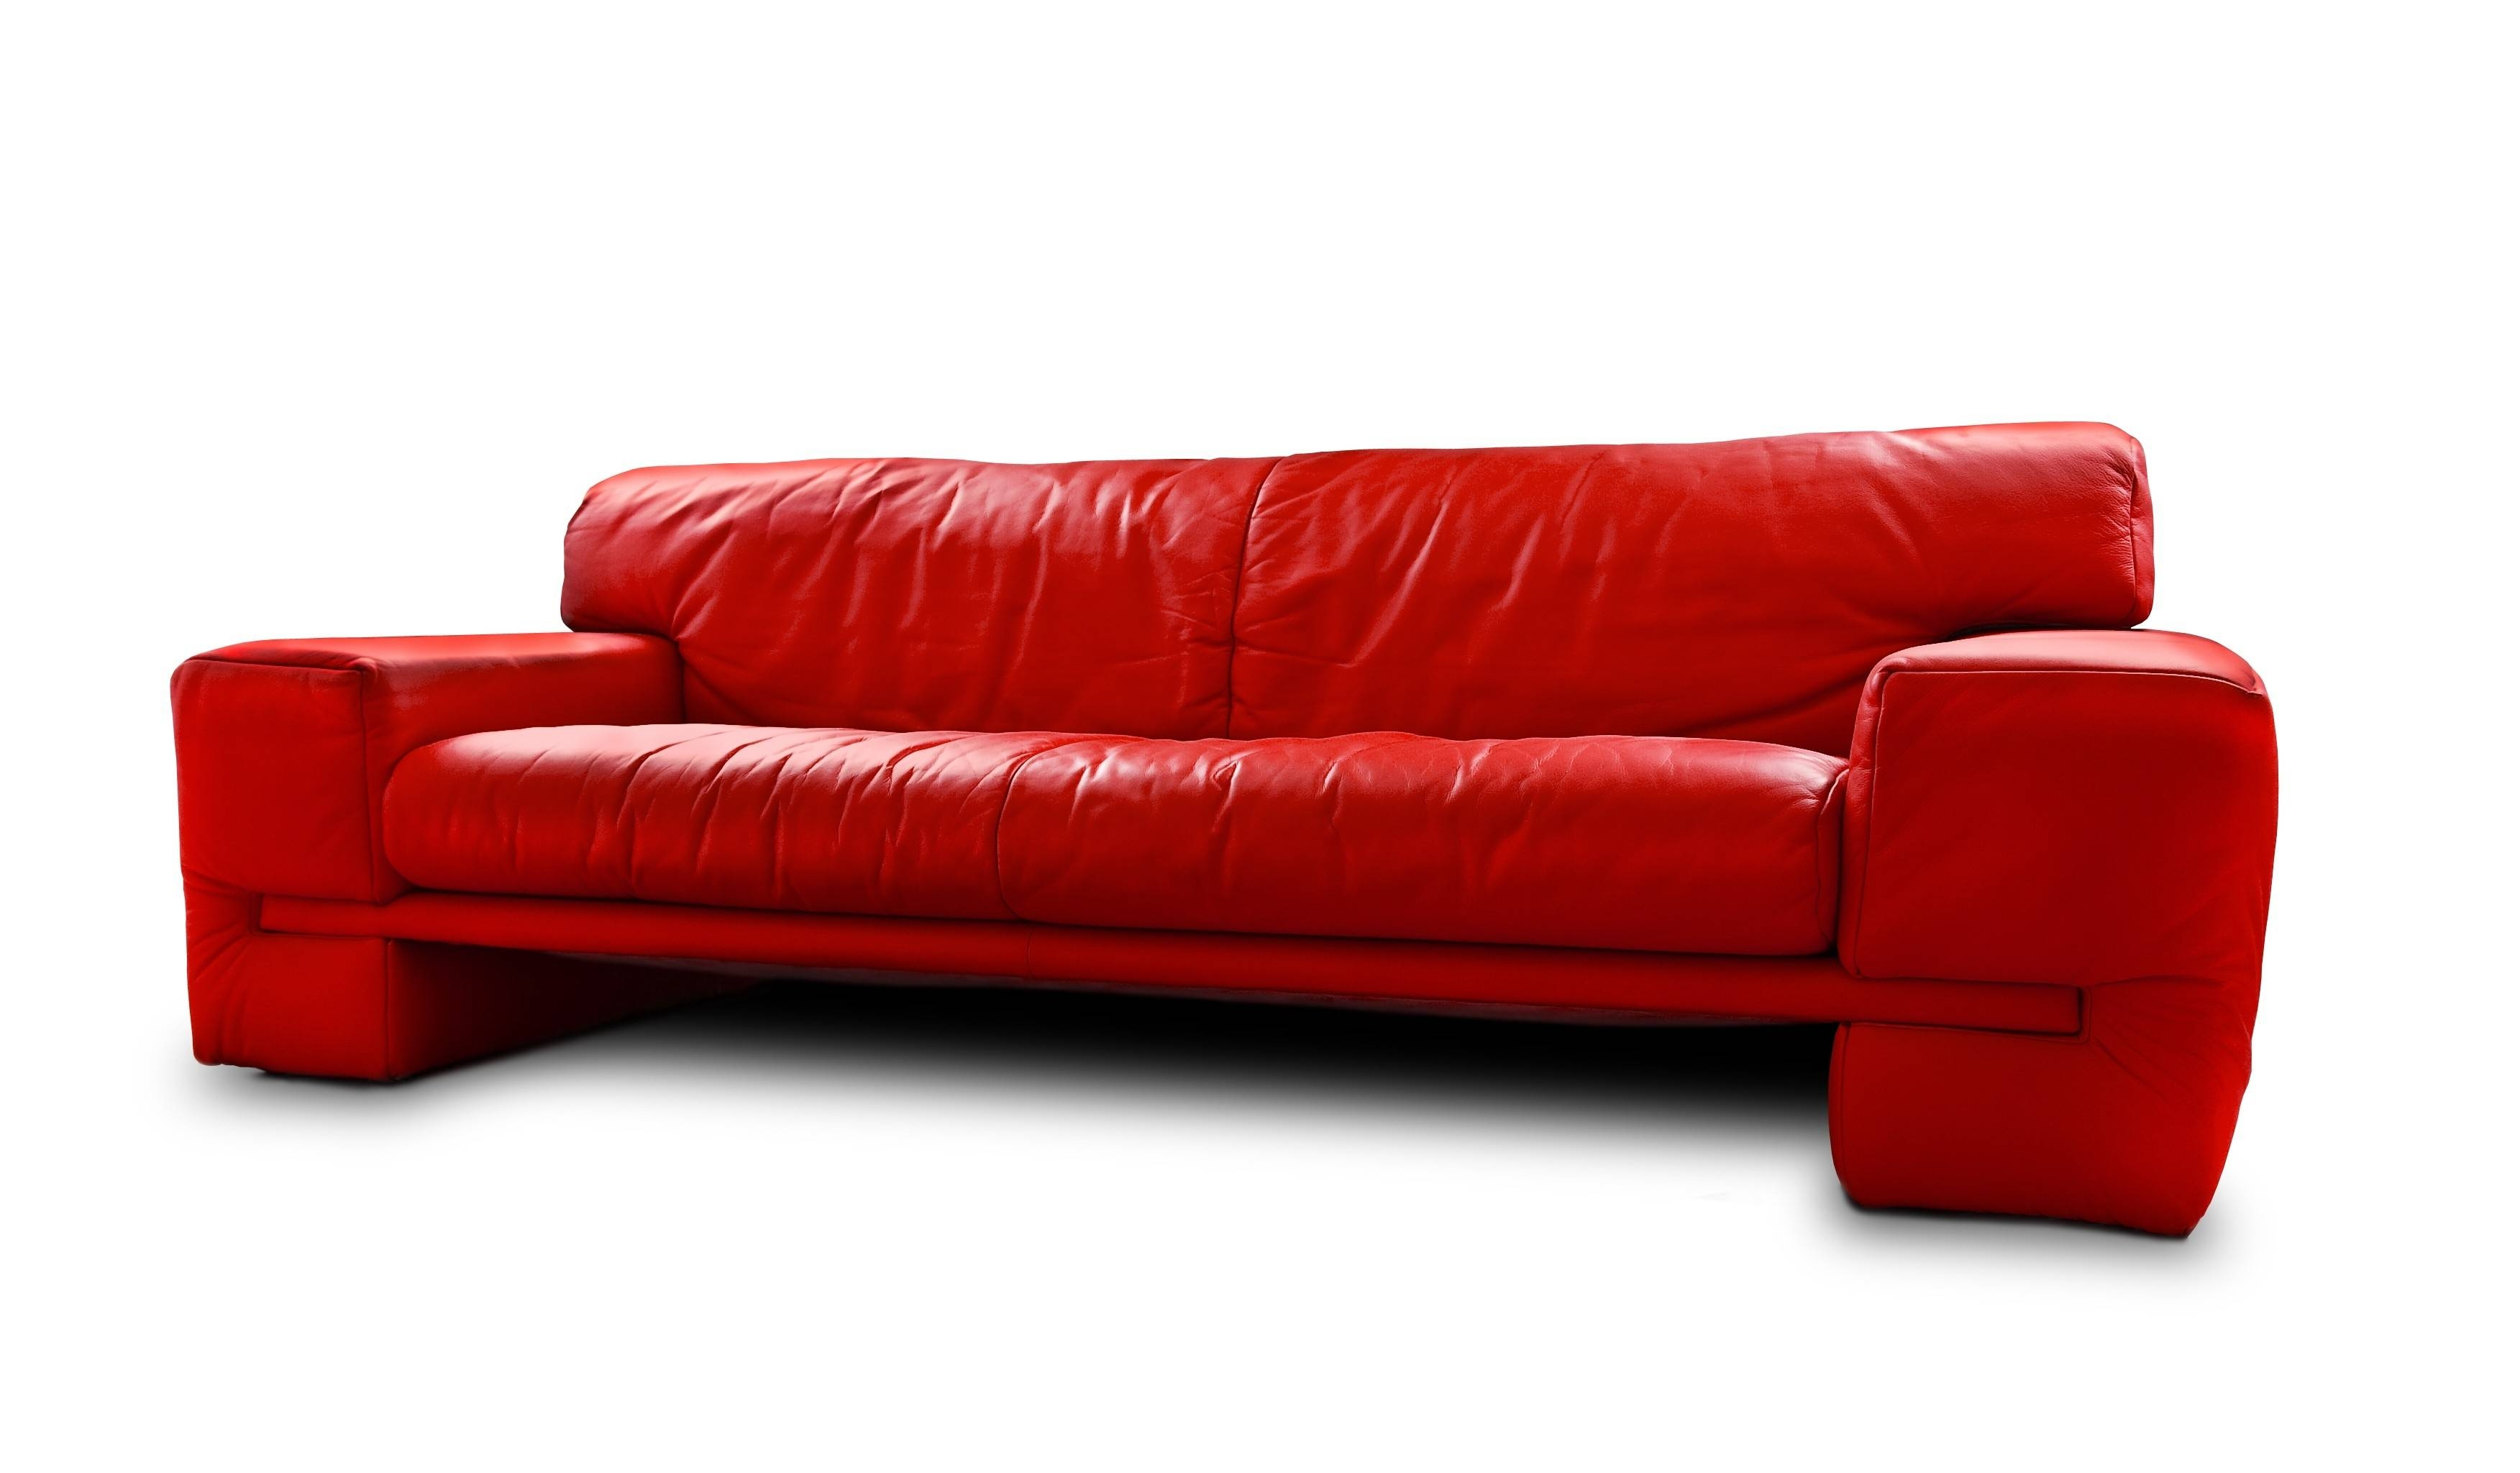 Furniture Home: Epic Sectional Sleeper Sofa Cheap 80 With regarding Red Sectional Sleeper Sofas (Image 10 of 30)